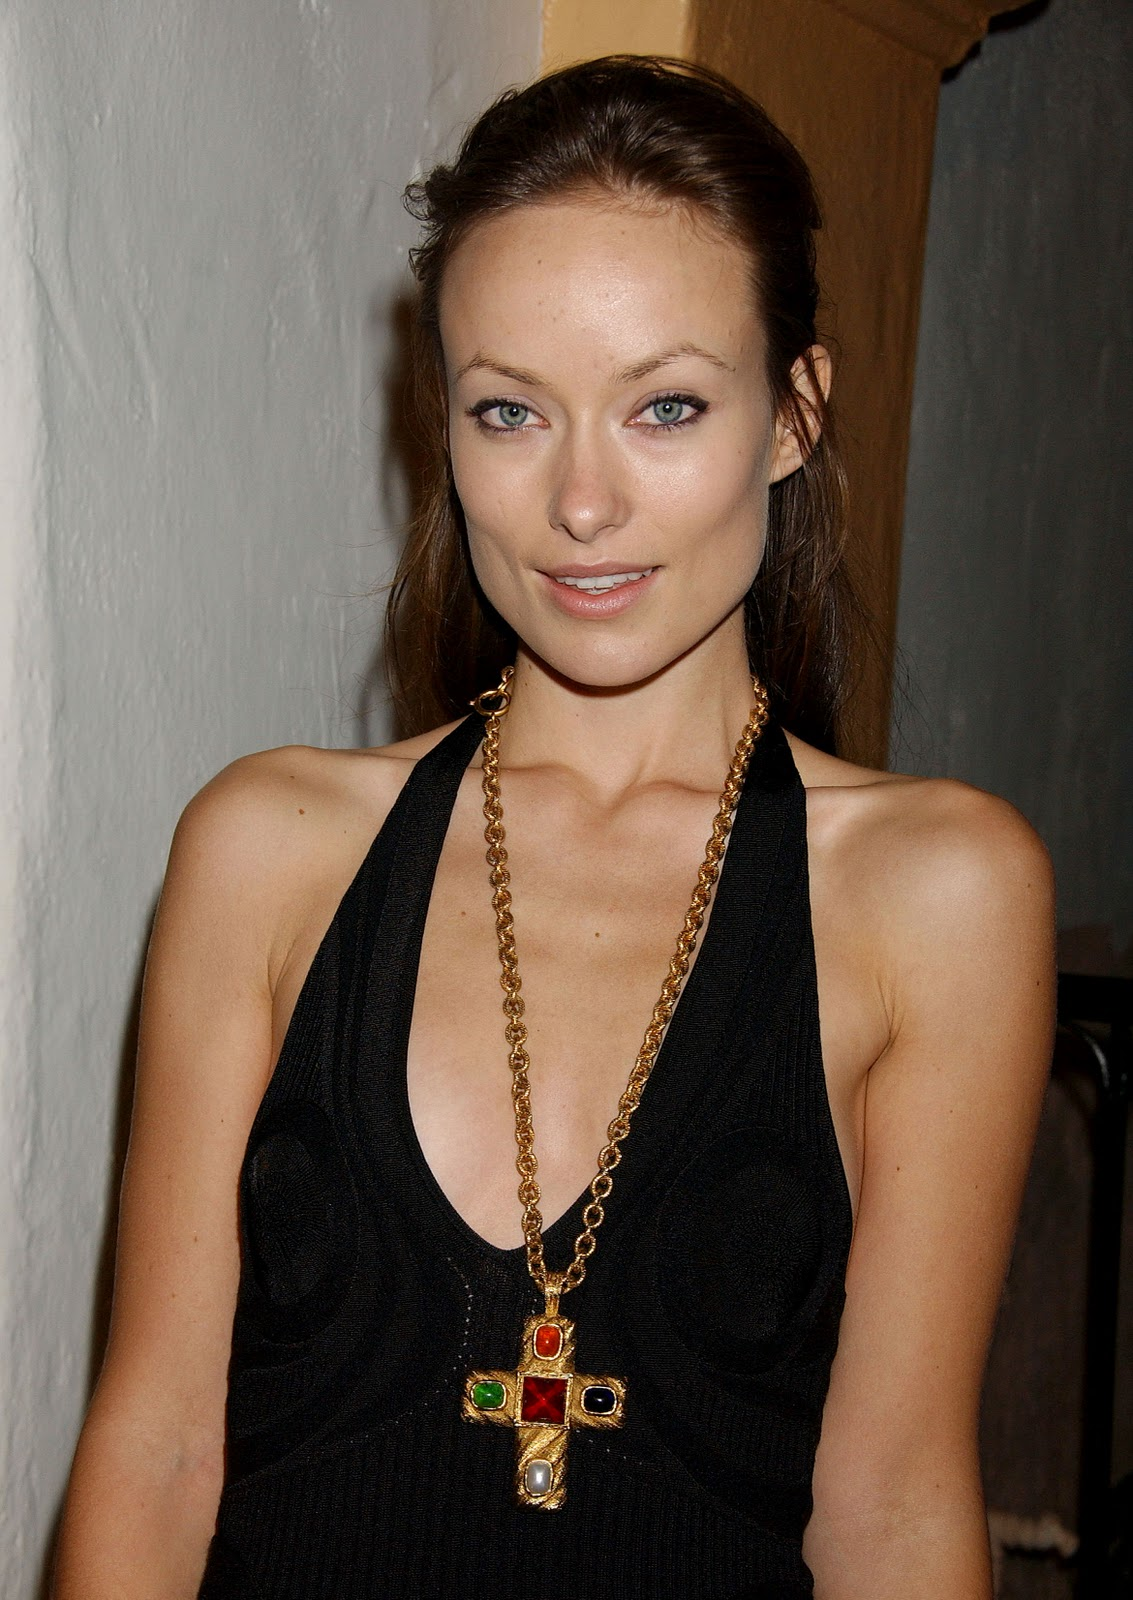 Olivia Wilde Pictures Gallery 3: Olivia Wilde Pictures Gallery (3)